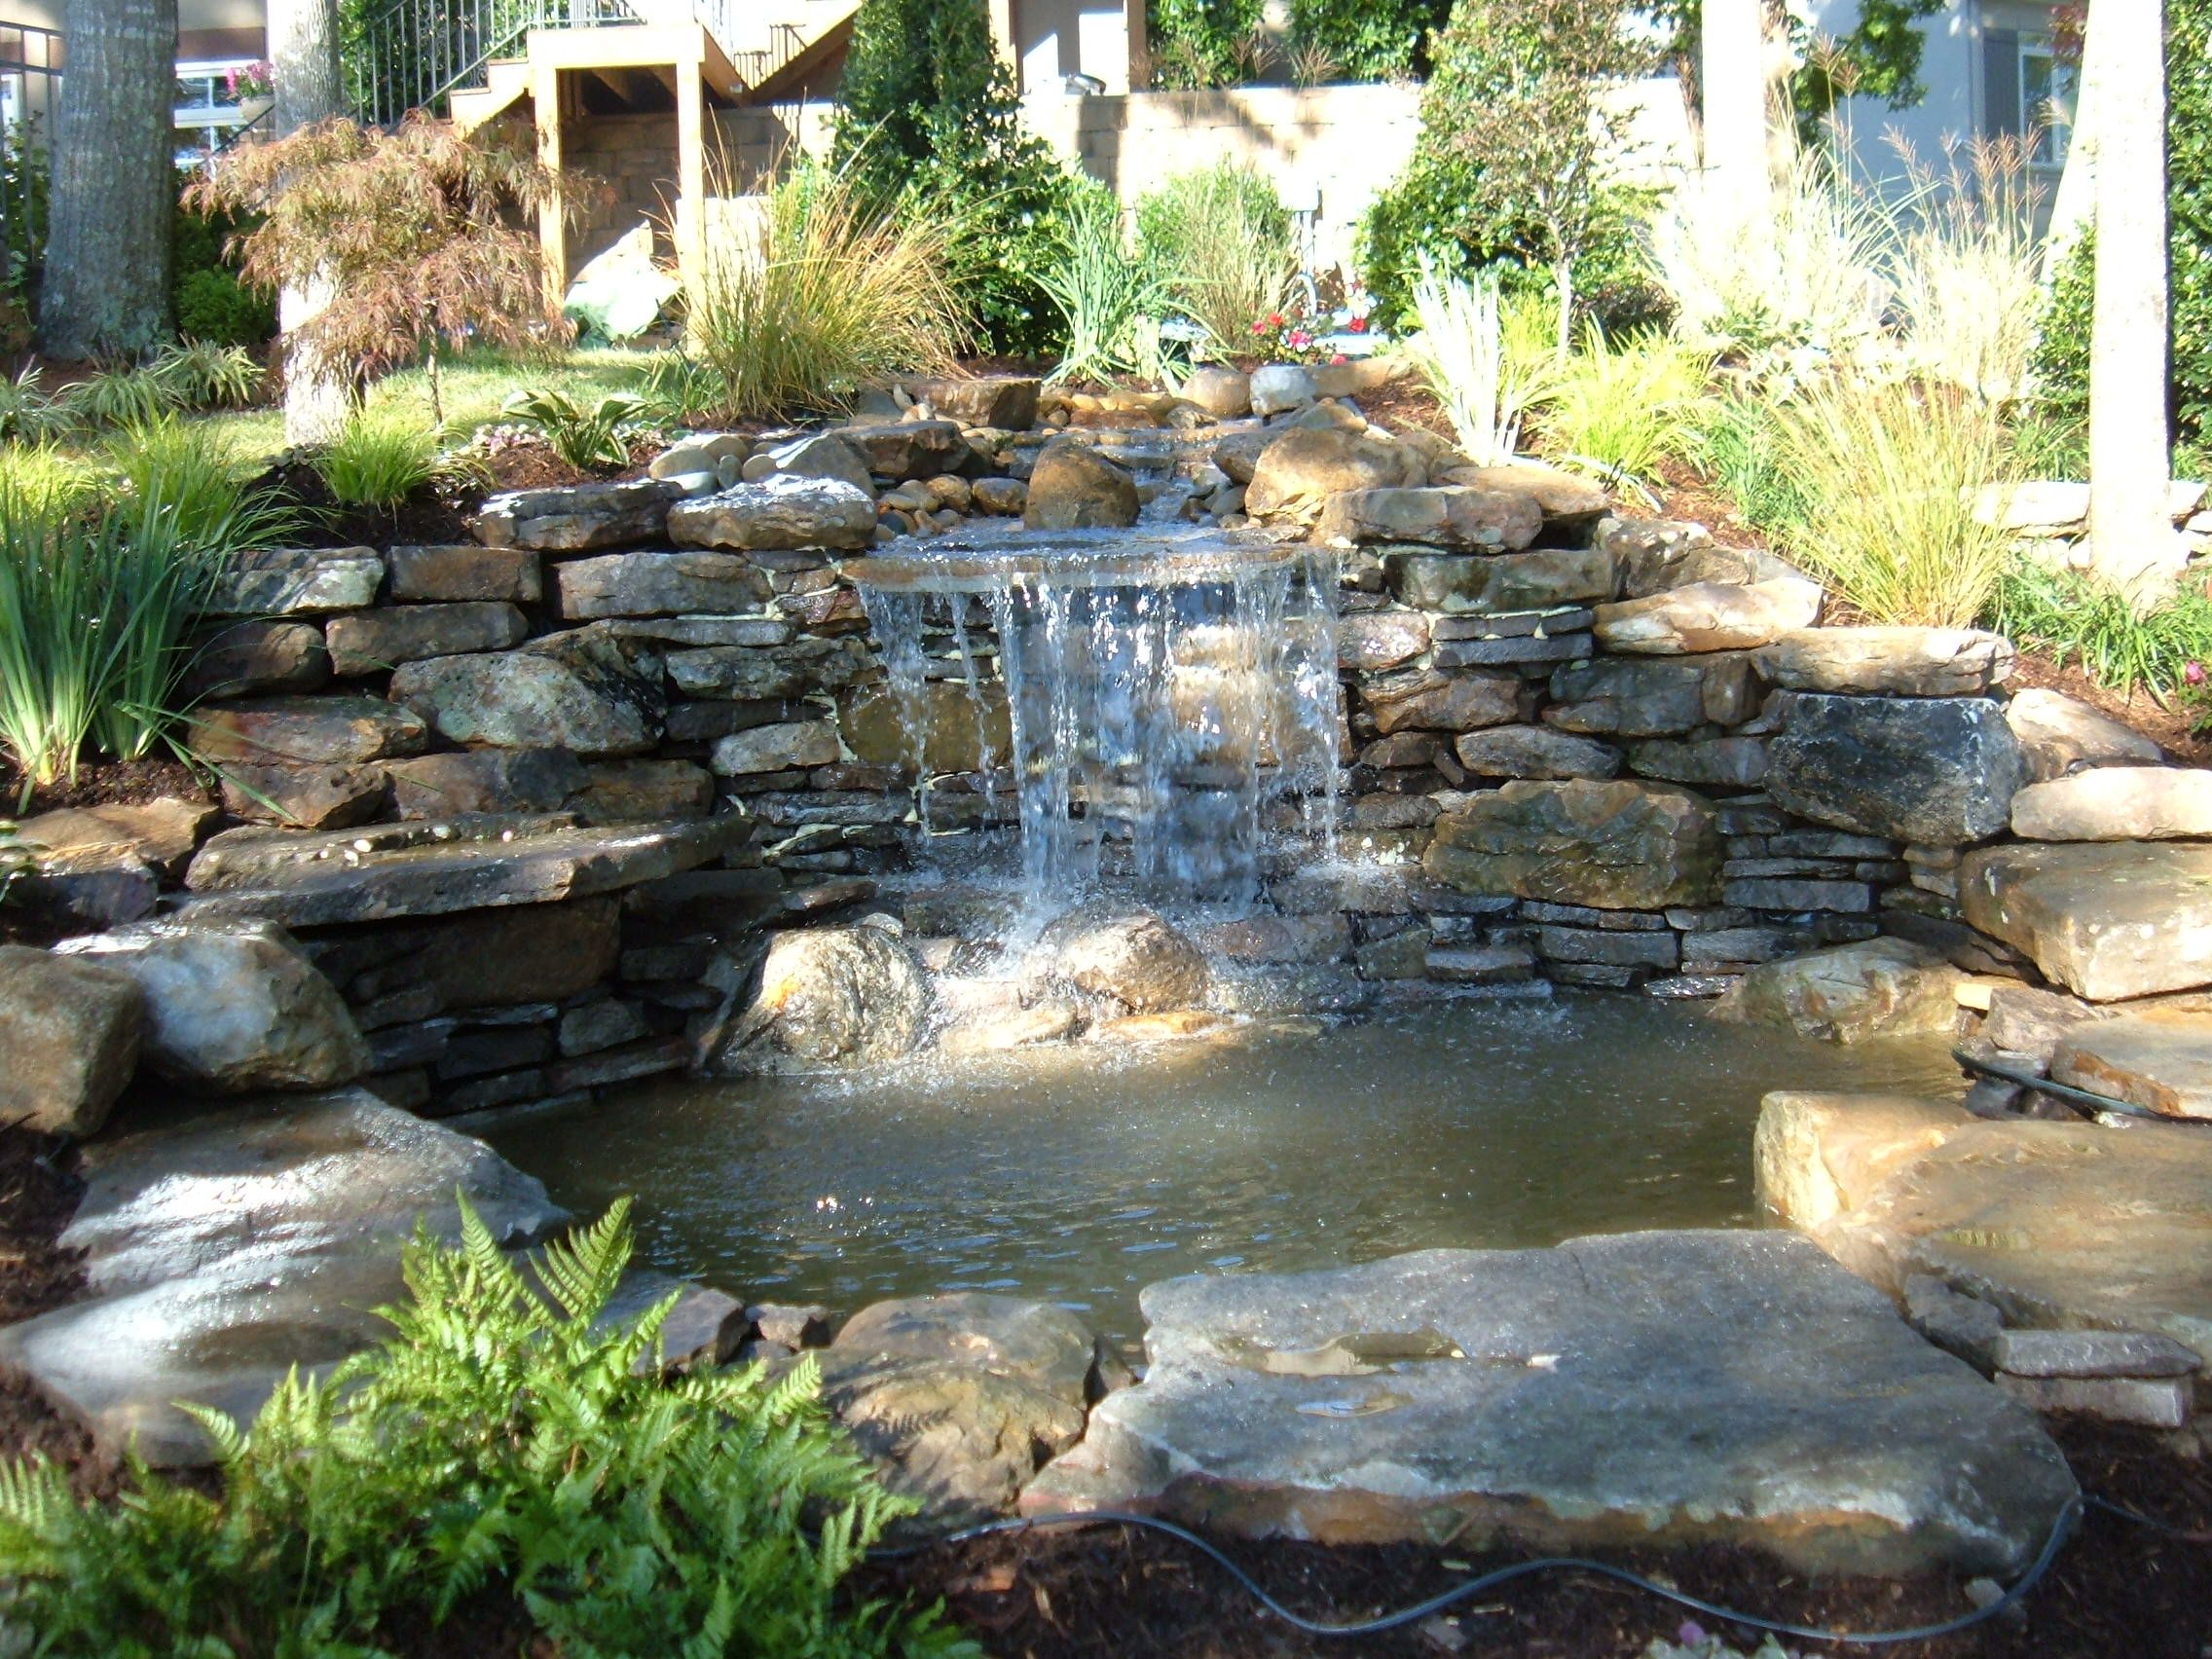 Charmant Outdoor:Garden Waterfalls Design To Make Your Home Looks Greaet Backyard  Garden Waterfalls Ideas With Nice Stone Placements